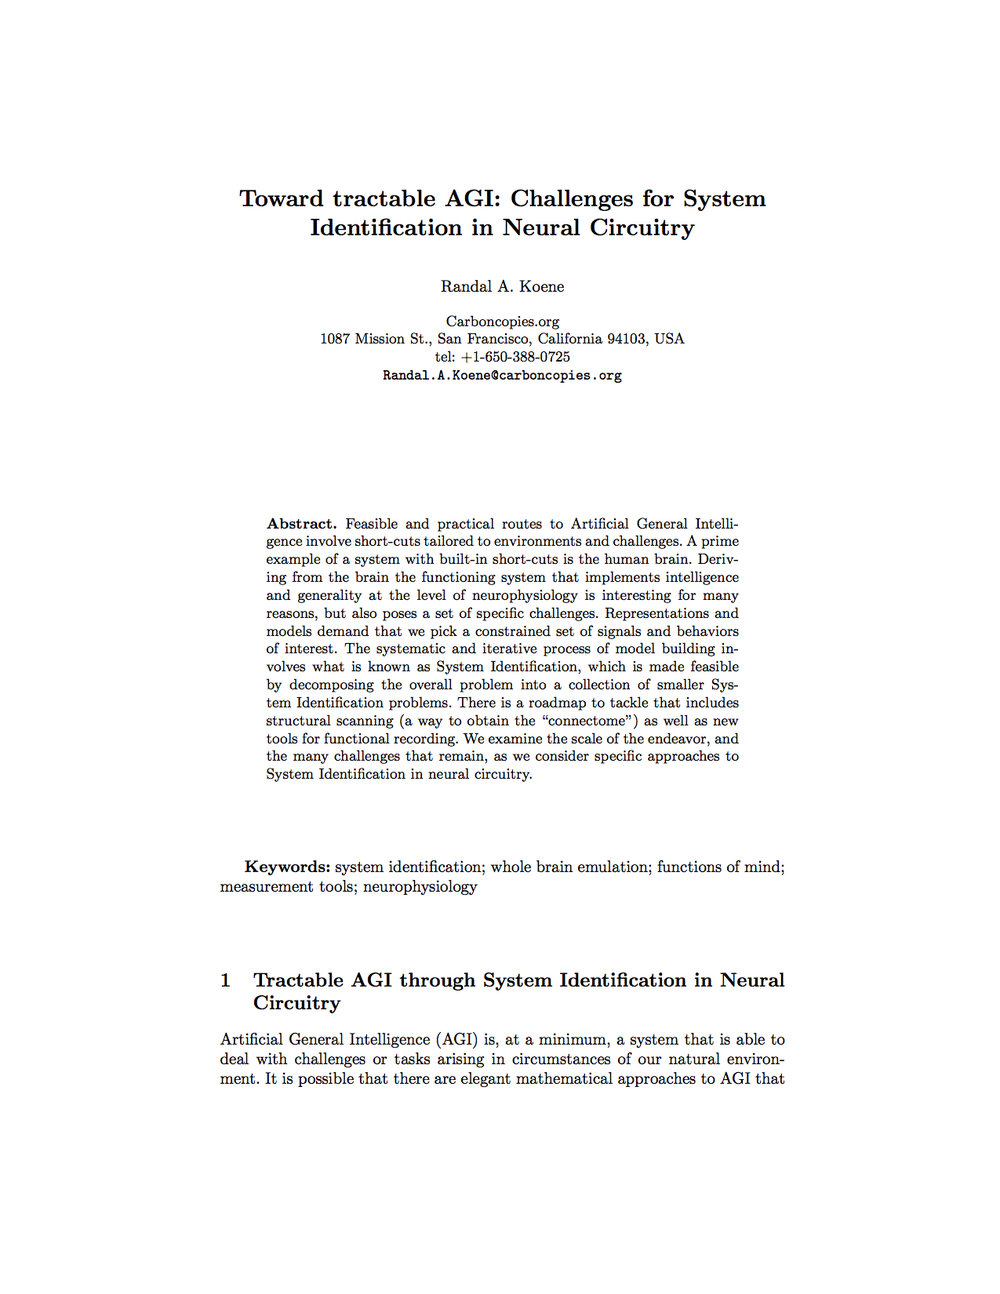 Copy of Toward tractable AGI: Challenges for System Identification in Neural Circuitry